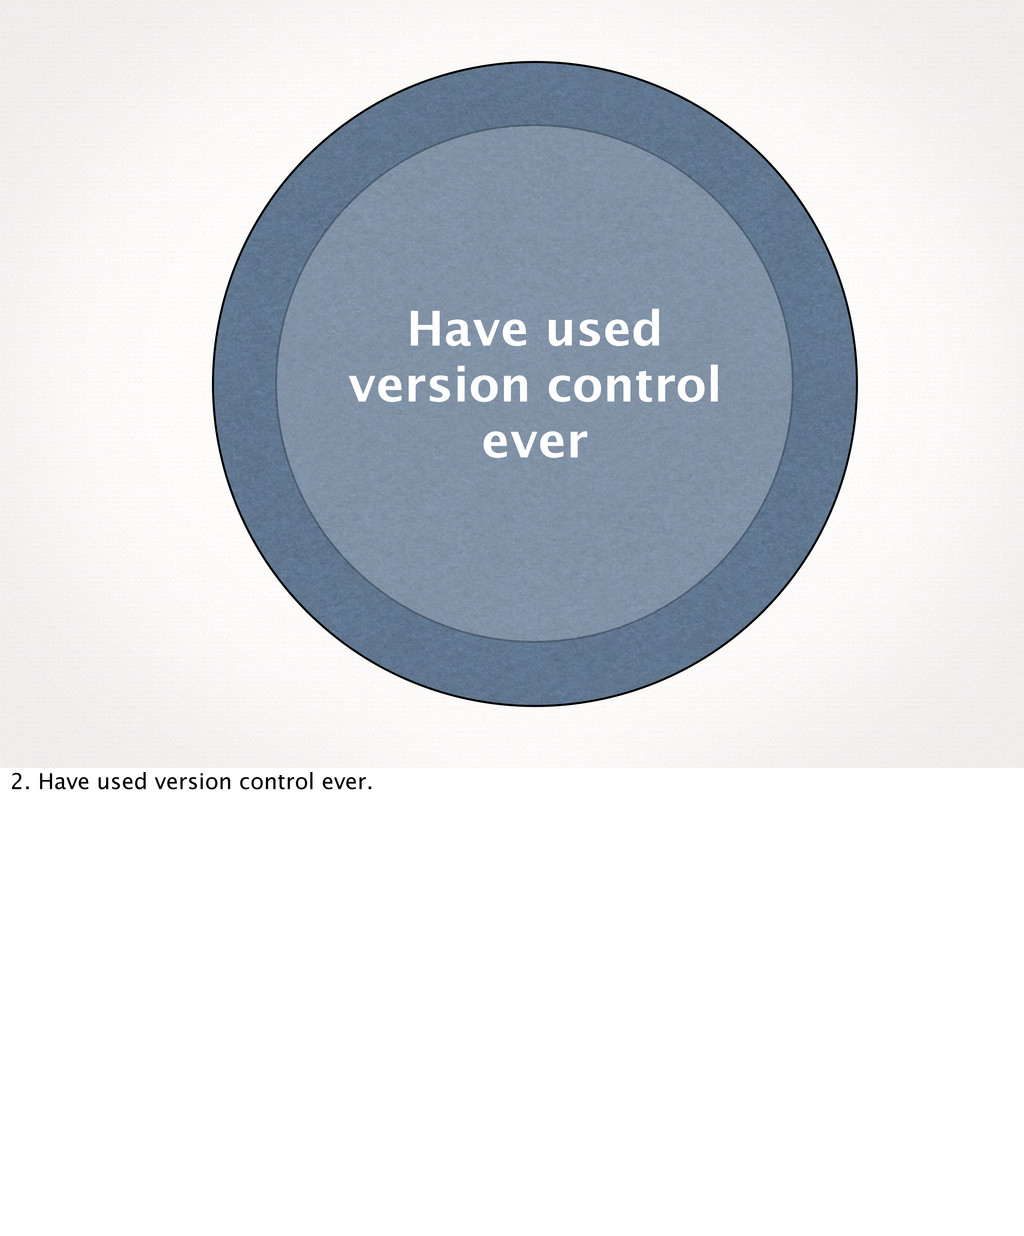 Have used version control ever 2. Have used ver...